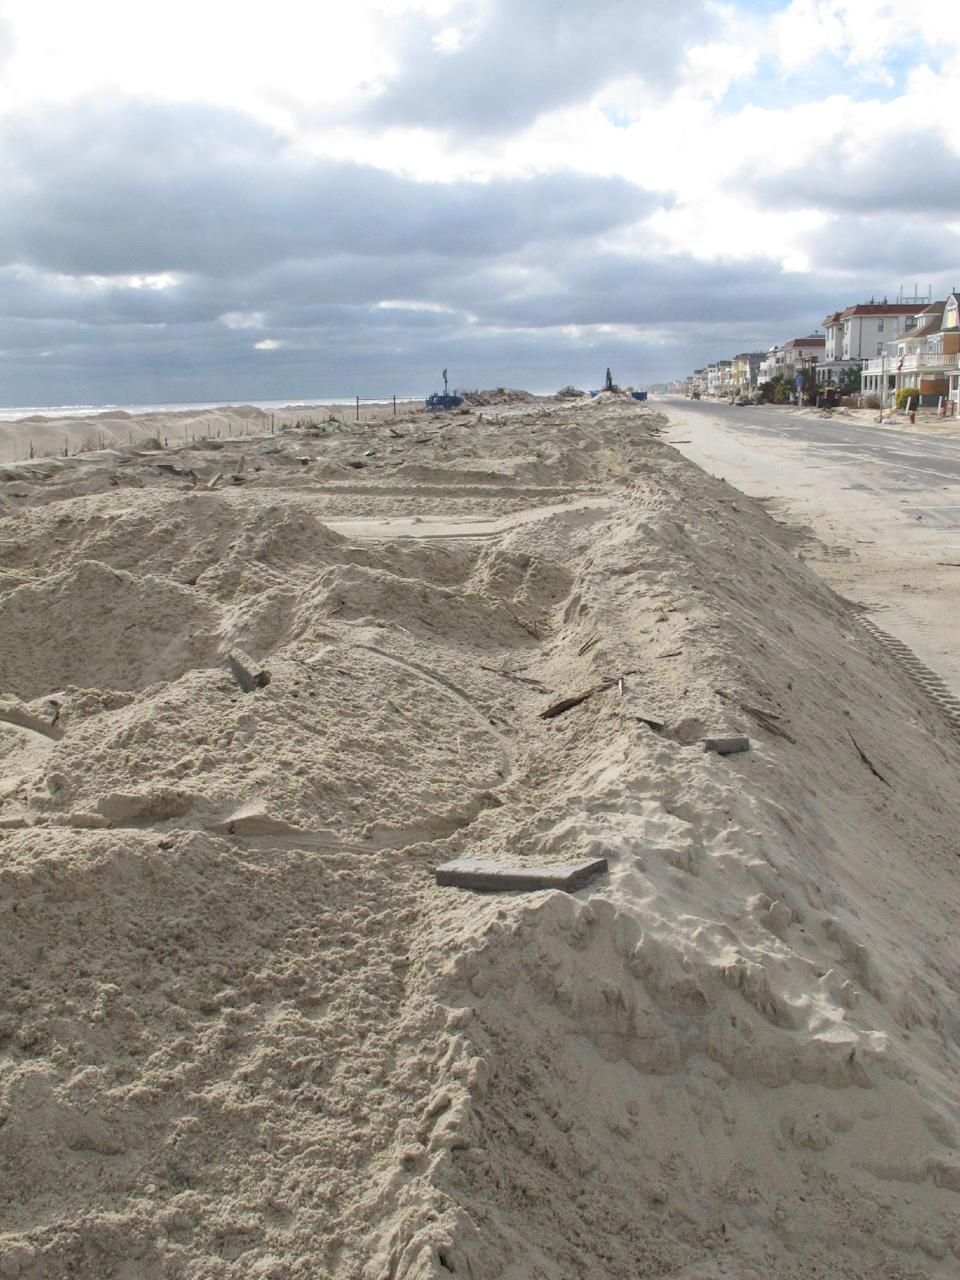 Piles of sand are all that remain where the Belmar N.J. boardwalk used to stand, in a Nov. 15, 2012 photo. Superstorm Sandy took a bite out of the Jersey shore, washing away millions of tons of sand and slimming down beaches along the state's 127-mile coastline. (AP Photo/Wayne Parry)